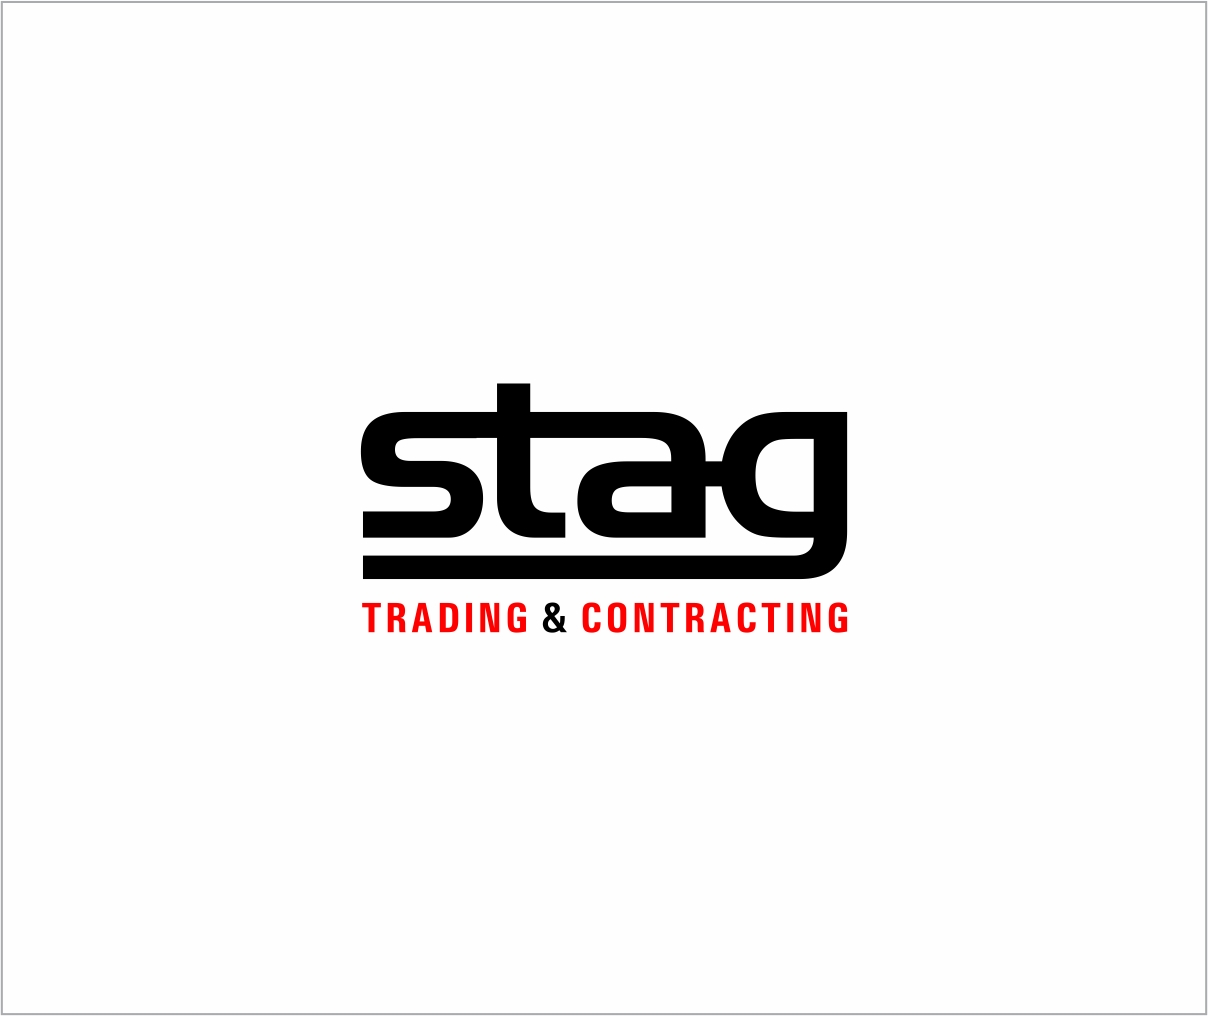 Logo Design by haidu - Entry No. 285 in the Logo Design Contest Captivating Logo Design for STAG Trading & Contracting.